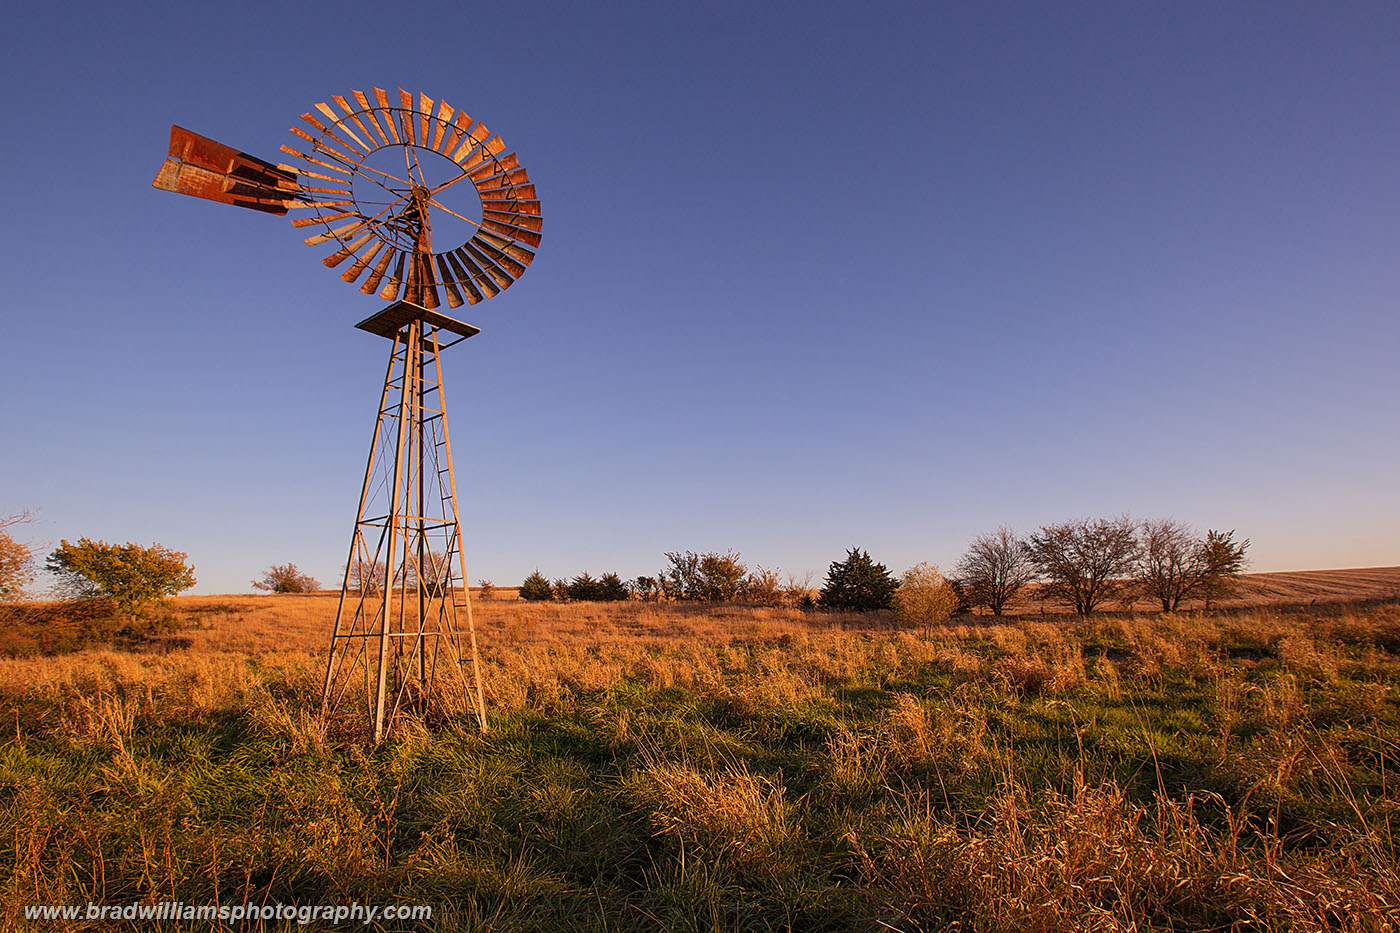 This Kregel windmill stood on my brothers farm nearNebraska city. After he moved away, the windmill was removed.&...